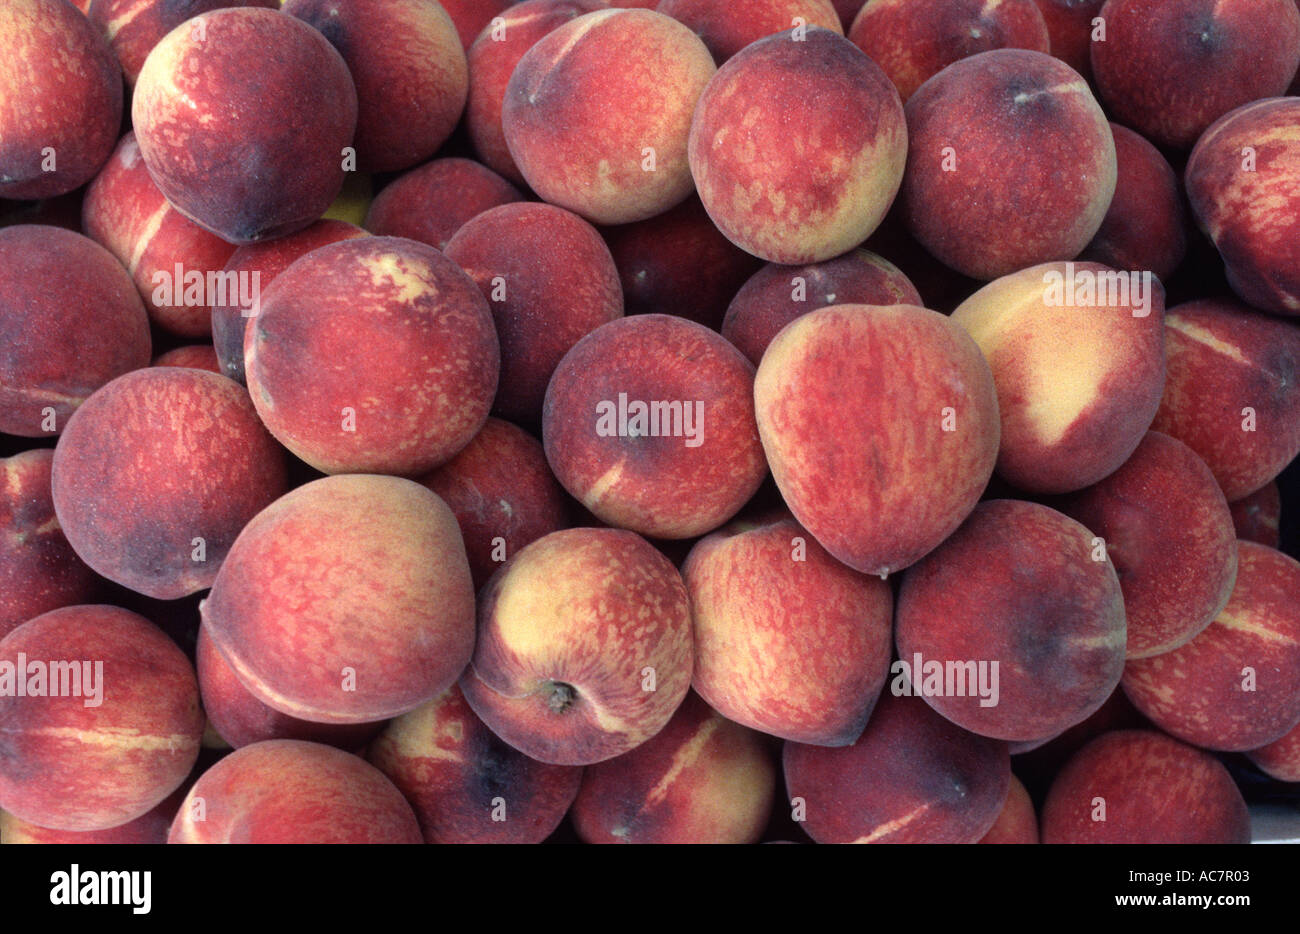 Fresh fruit for sale on a market stall Chelsea Farmers Market Chelsea England Peaches - Stock Image